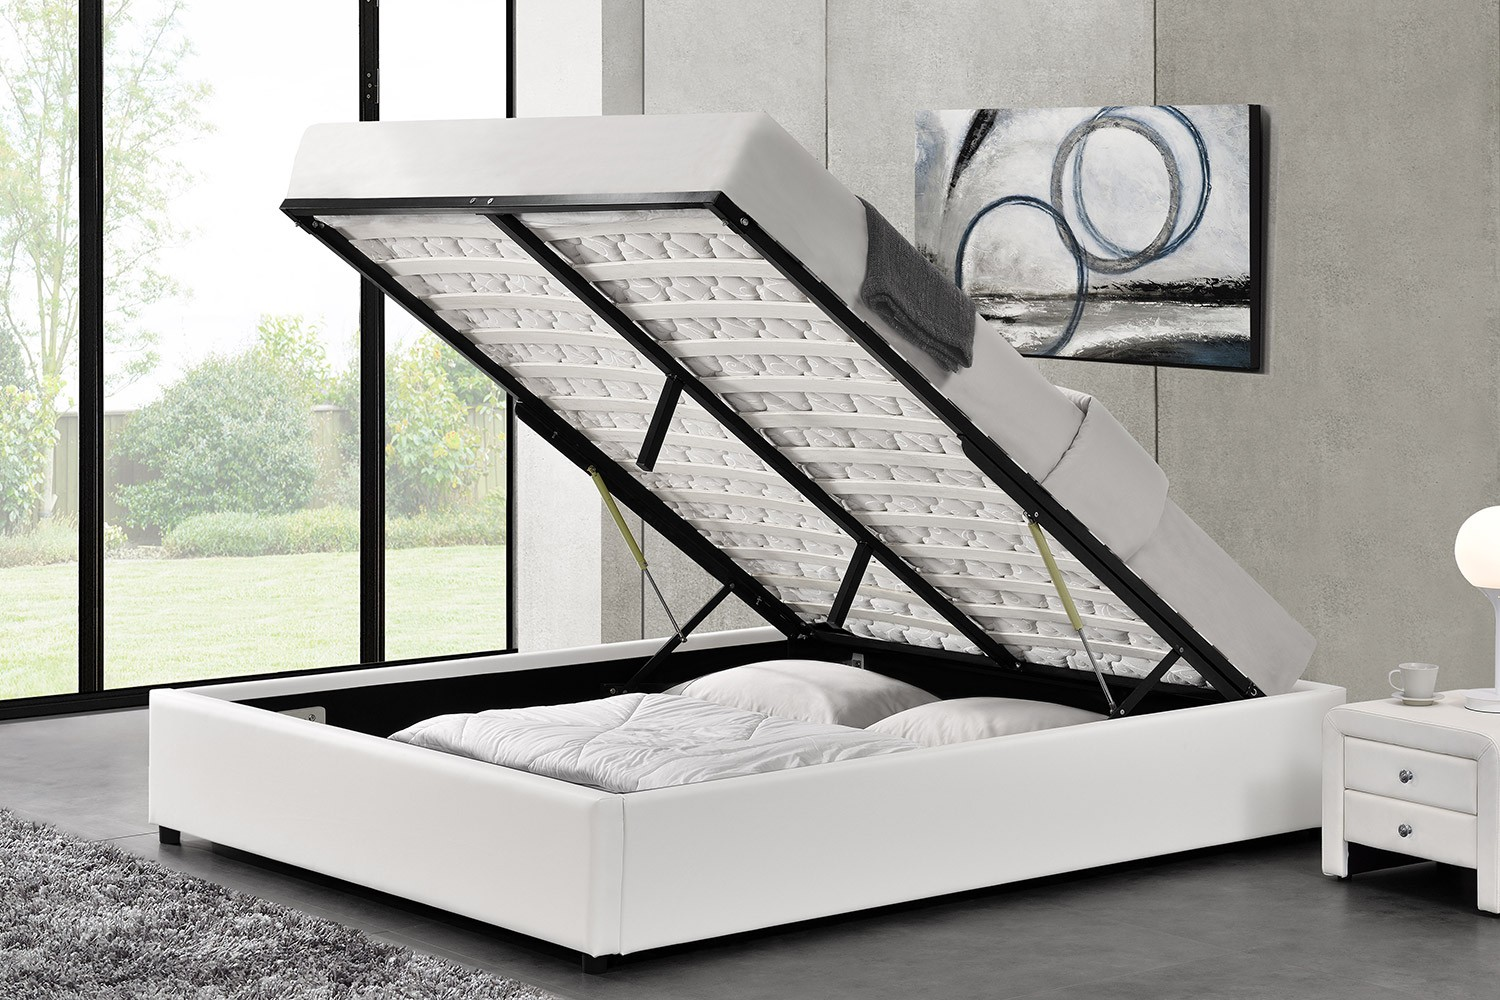 lit oakley structure de lit blanc avec coffre de rangement int gr 160x200 cm cadres de lit. Black Bedroom Furniture Sets. Home Design Ideas